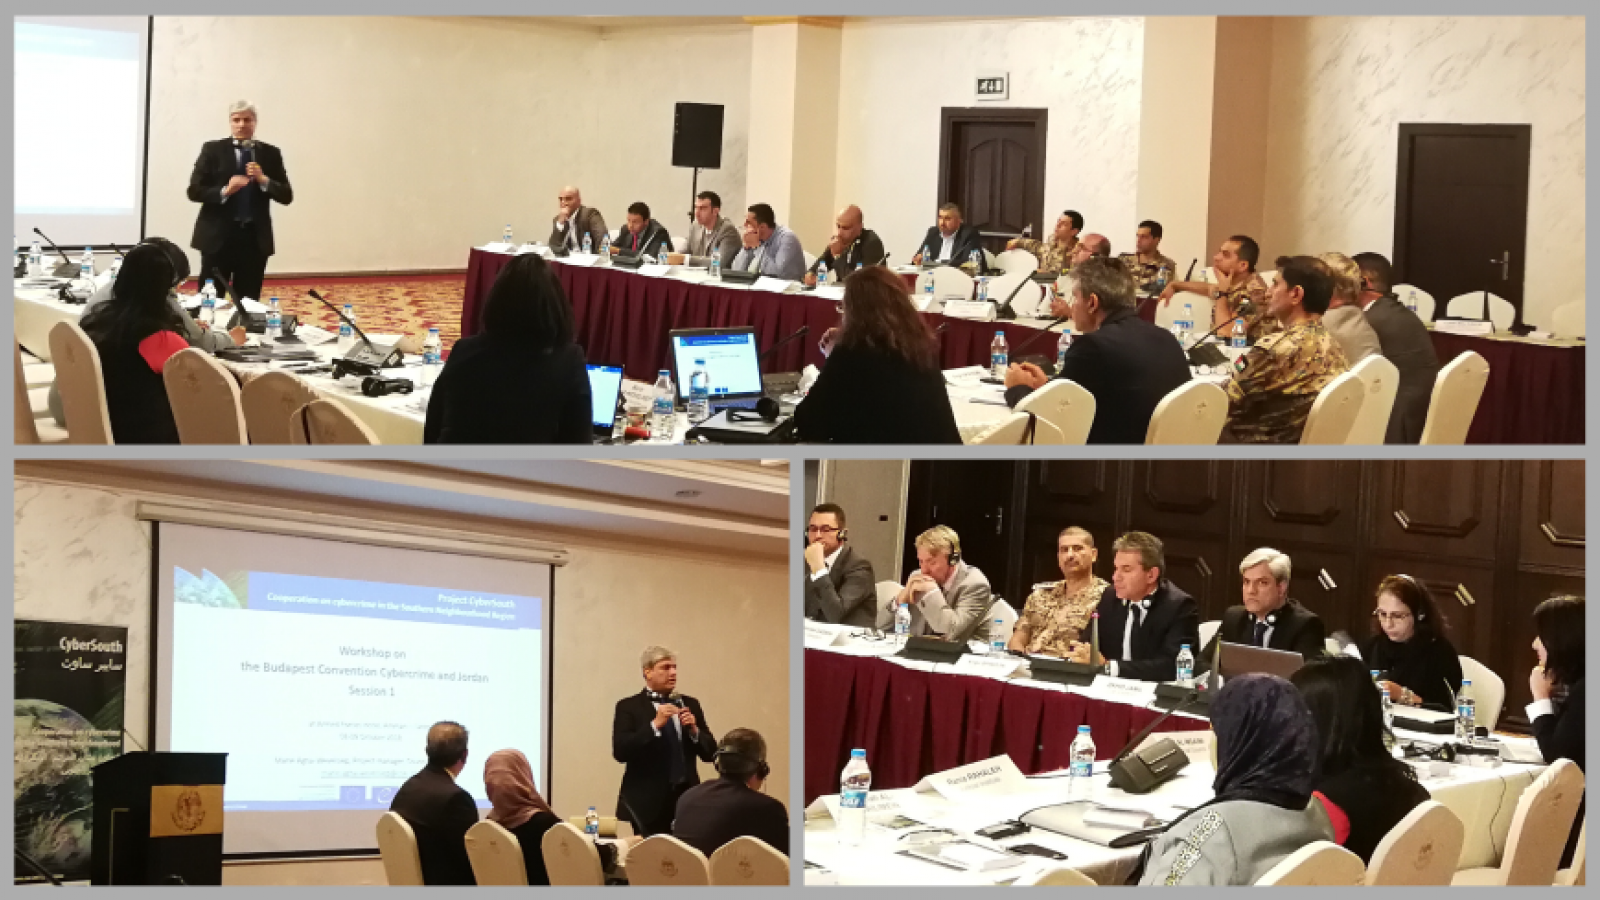 CyberSouth: Workshop on the Budapest Convention on Cybercrime in Jordan